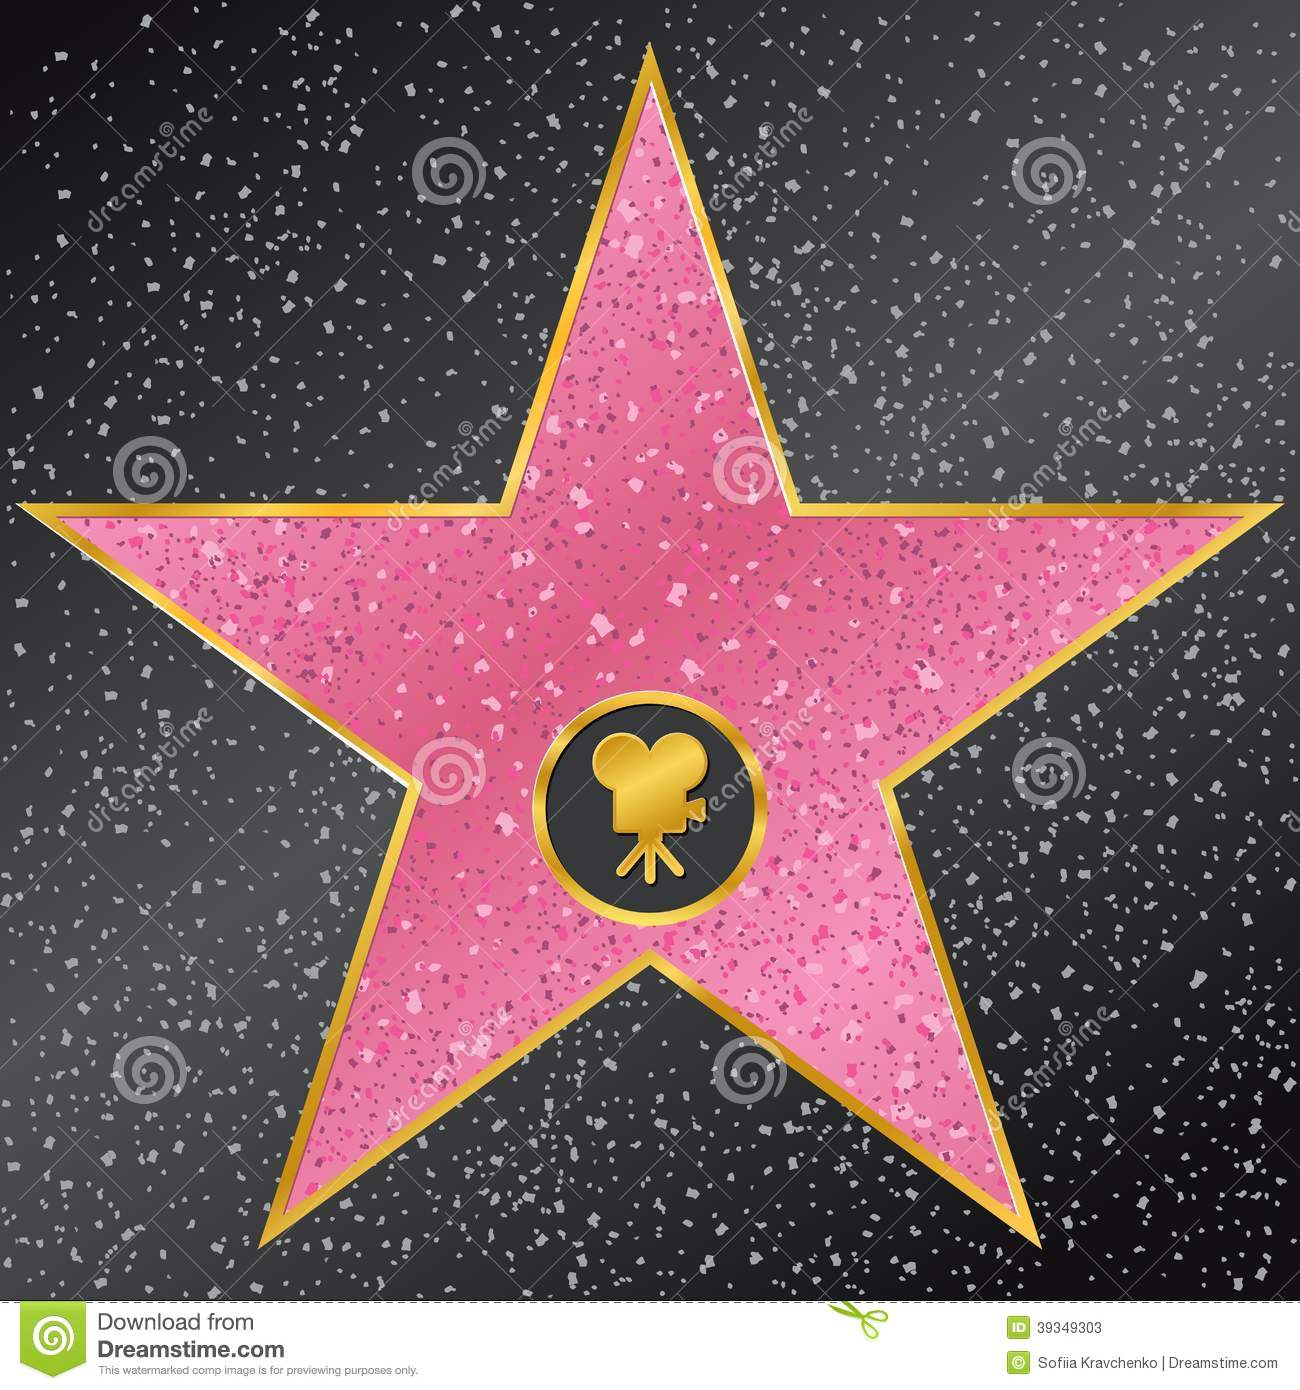 Hollywood walk of fame clipart.